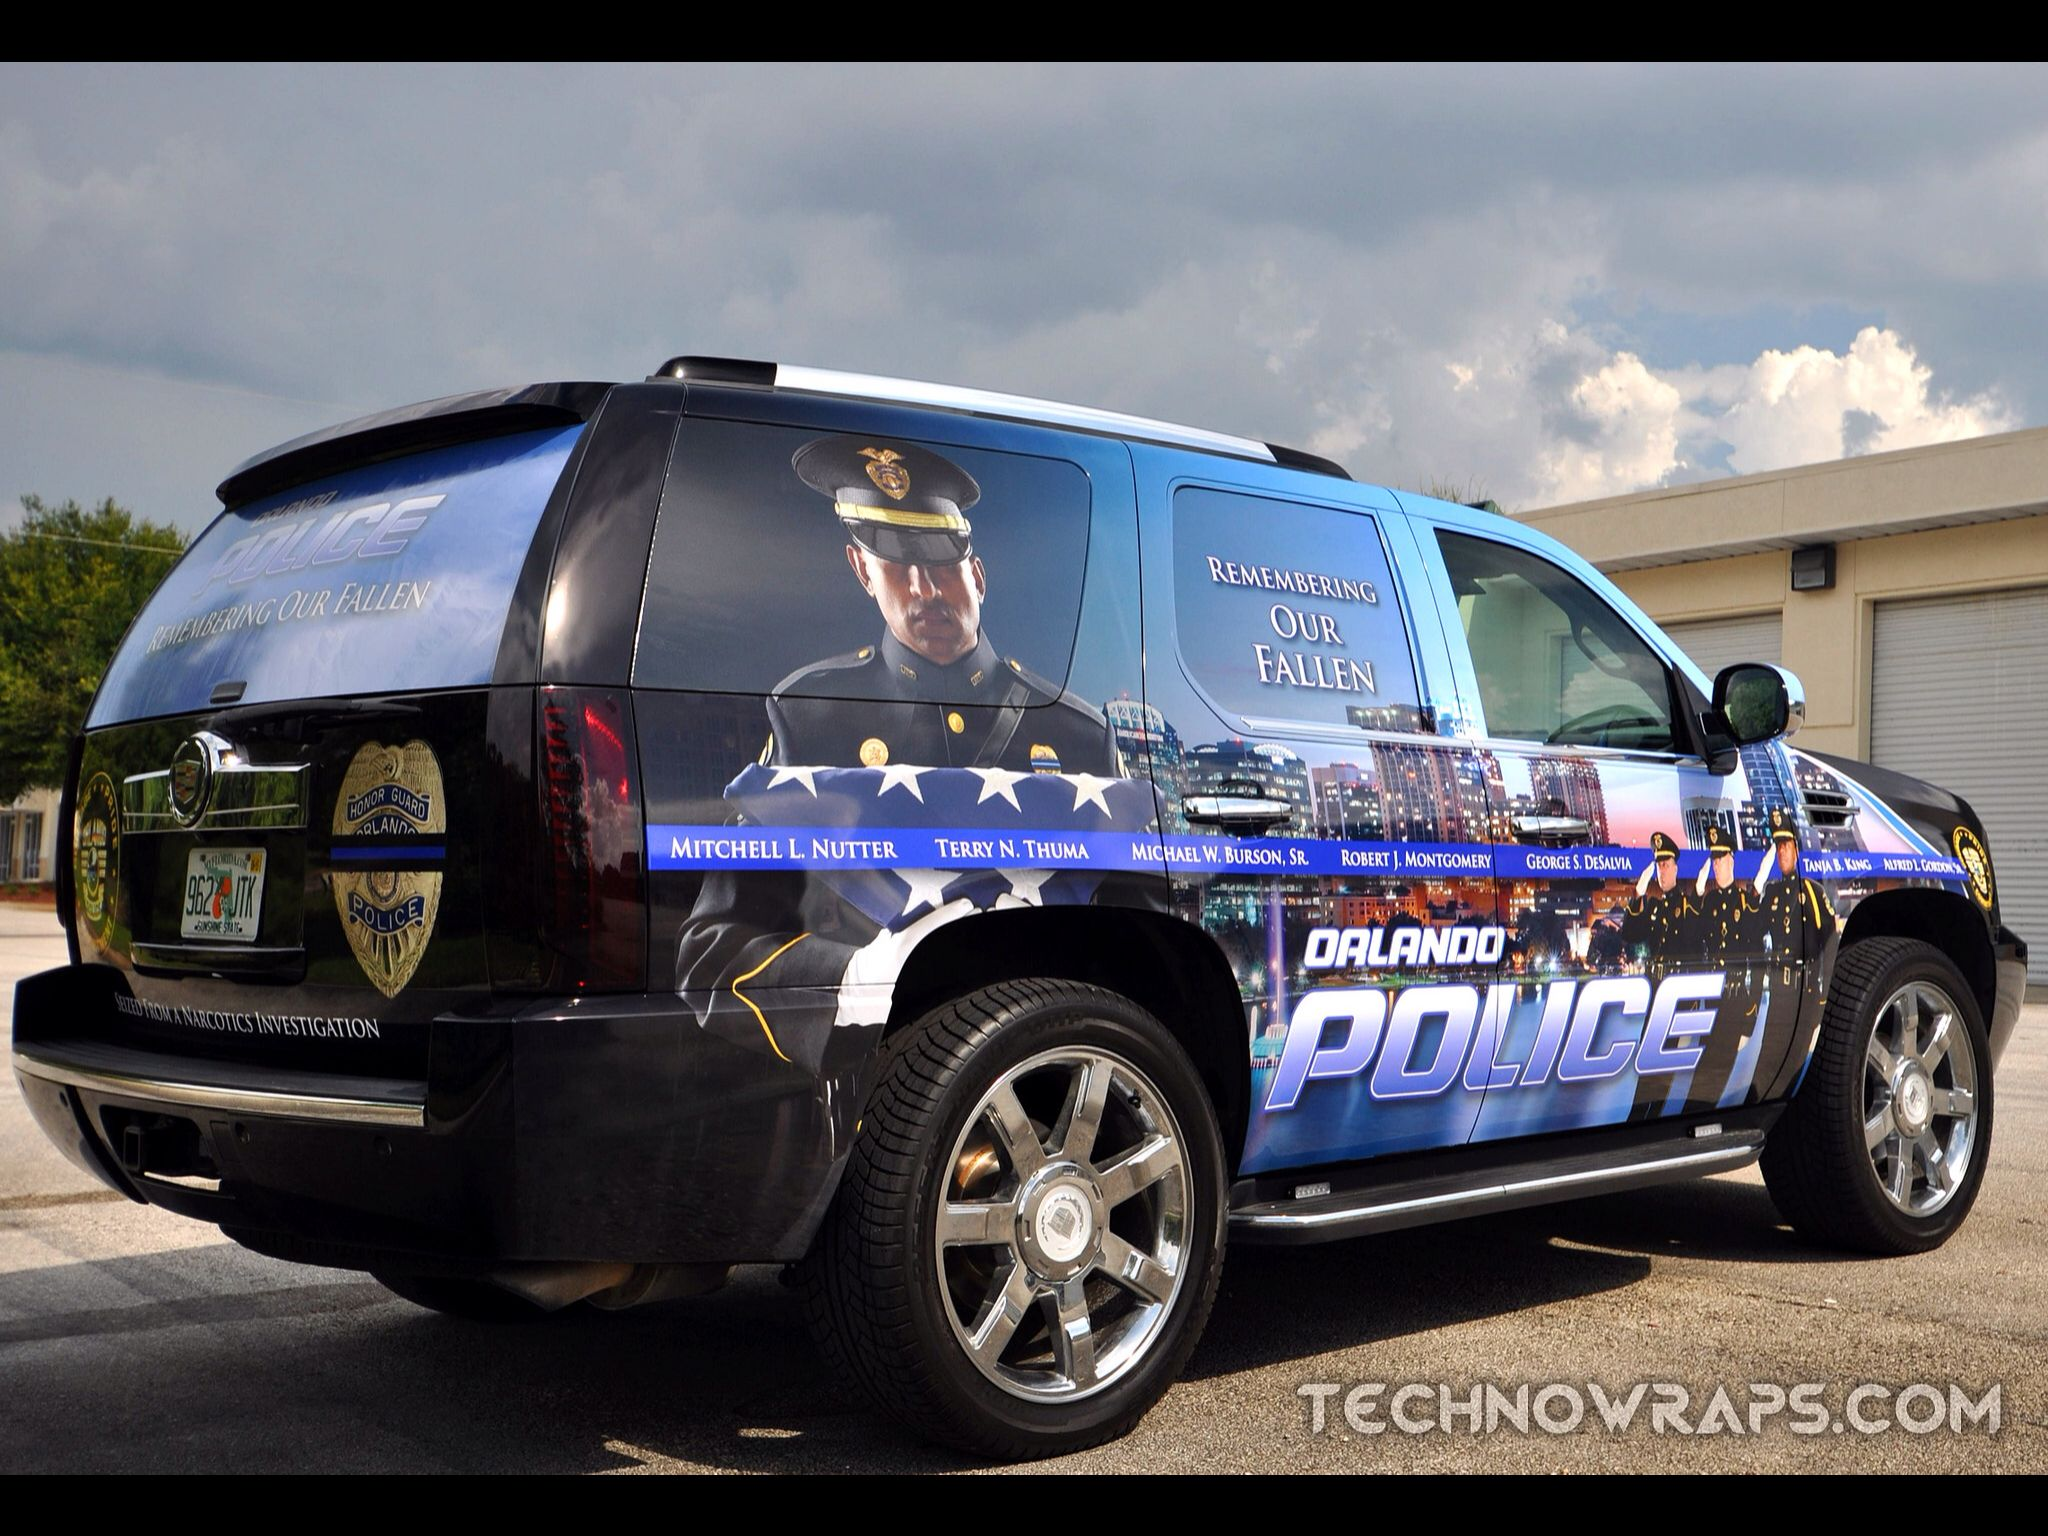 Custom Designed Police Vehicle Wrap By Technosigns In Orlando Florida More Law Enforcement Vehicle Wraps And Graphics Can Police Cars Law Enforcement Police